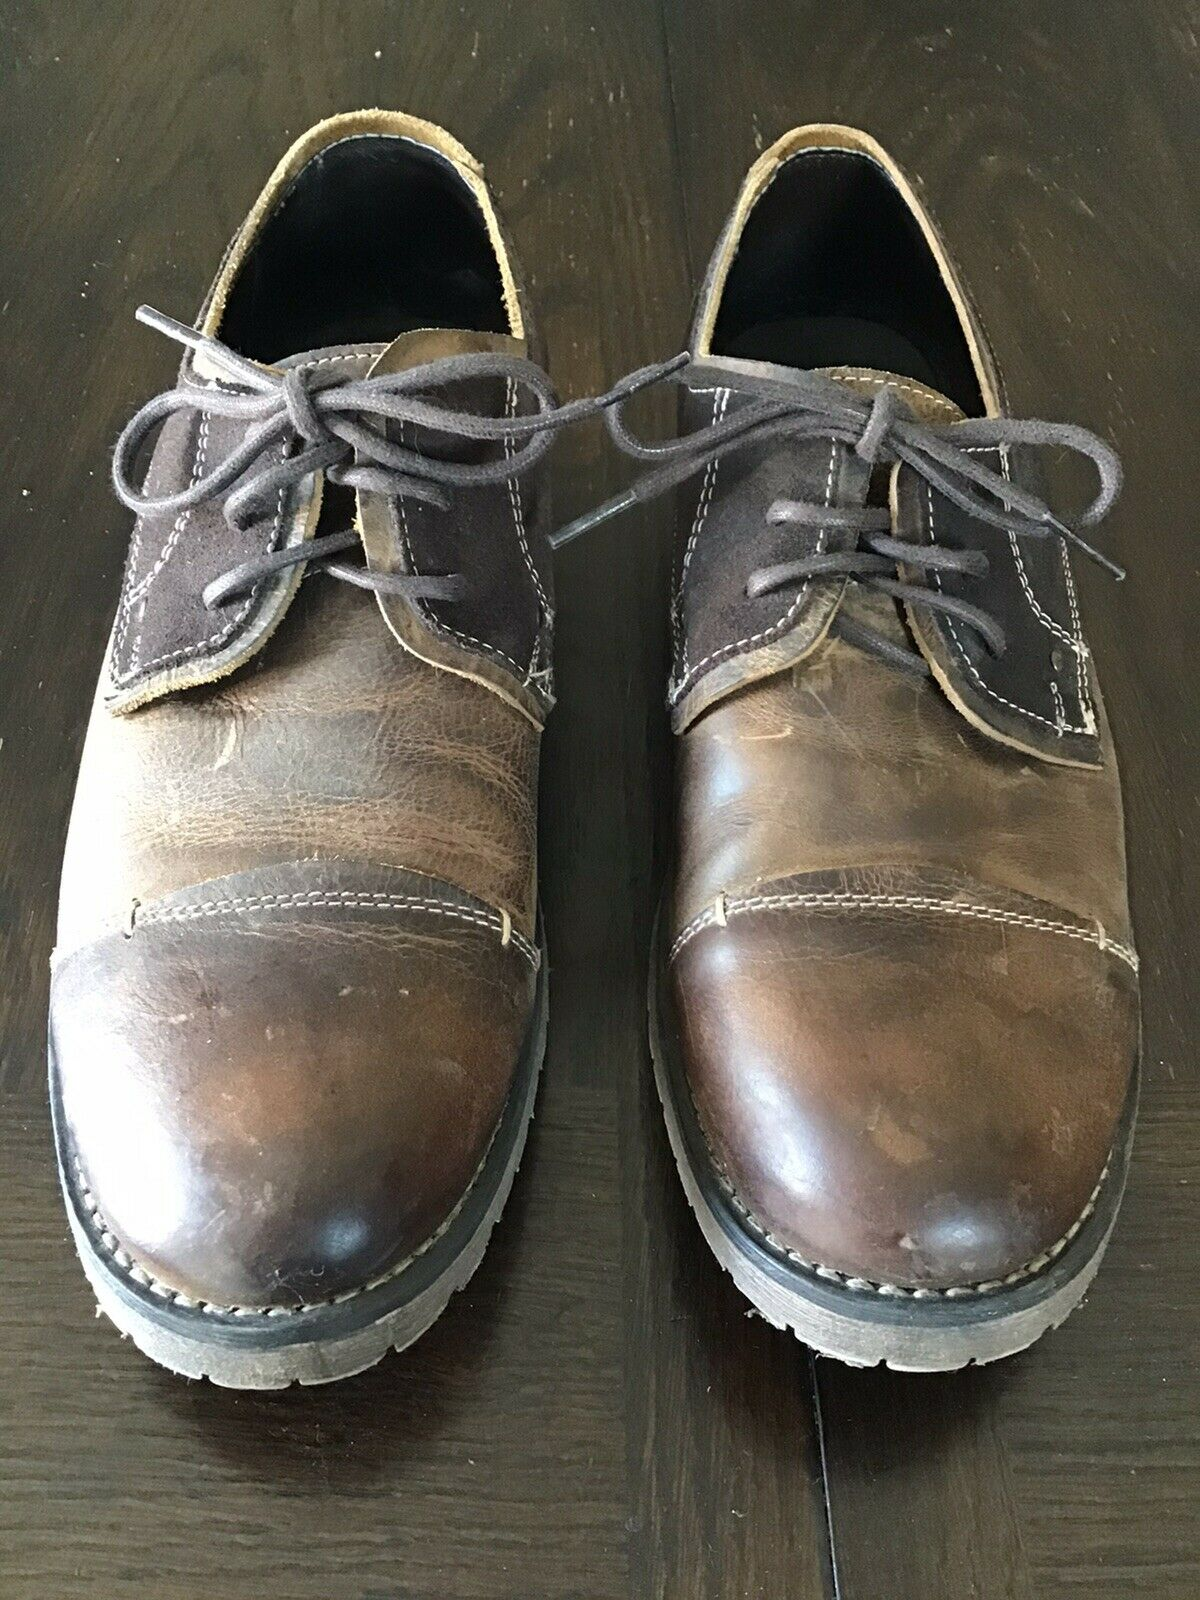 Bed Stu Men's 10 1/2 M Shoes Brown Leather Suede Oxford Lace Up